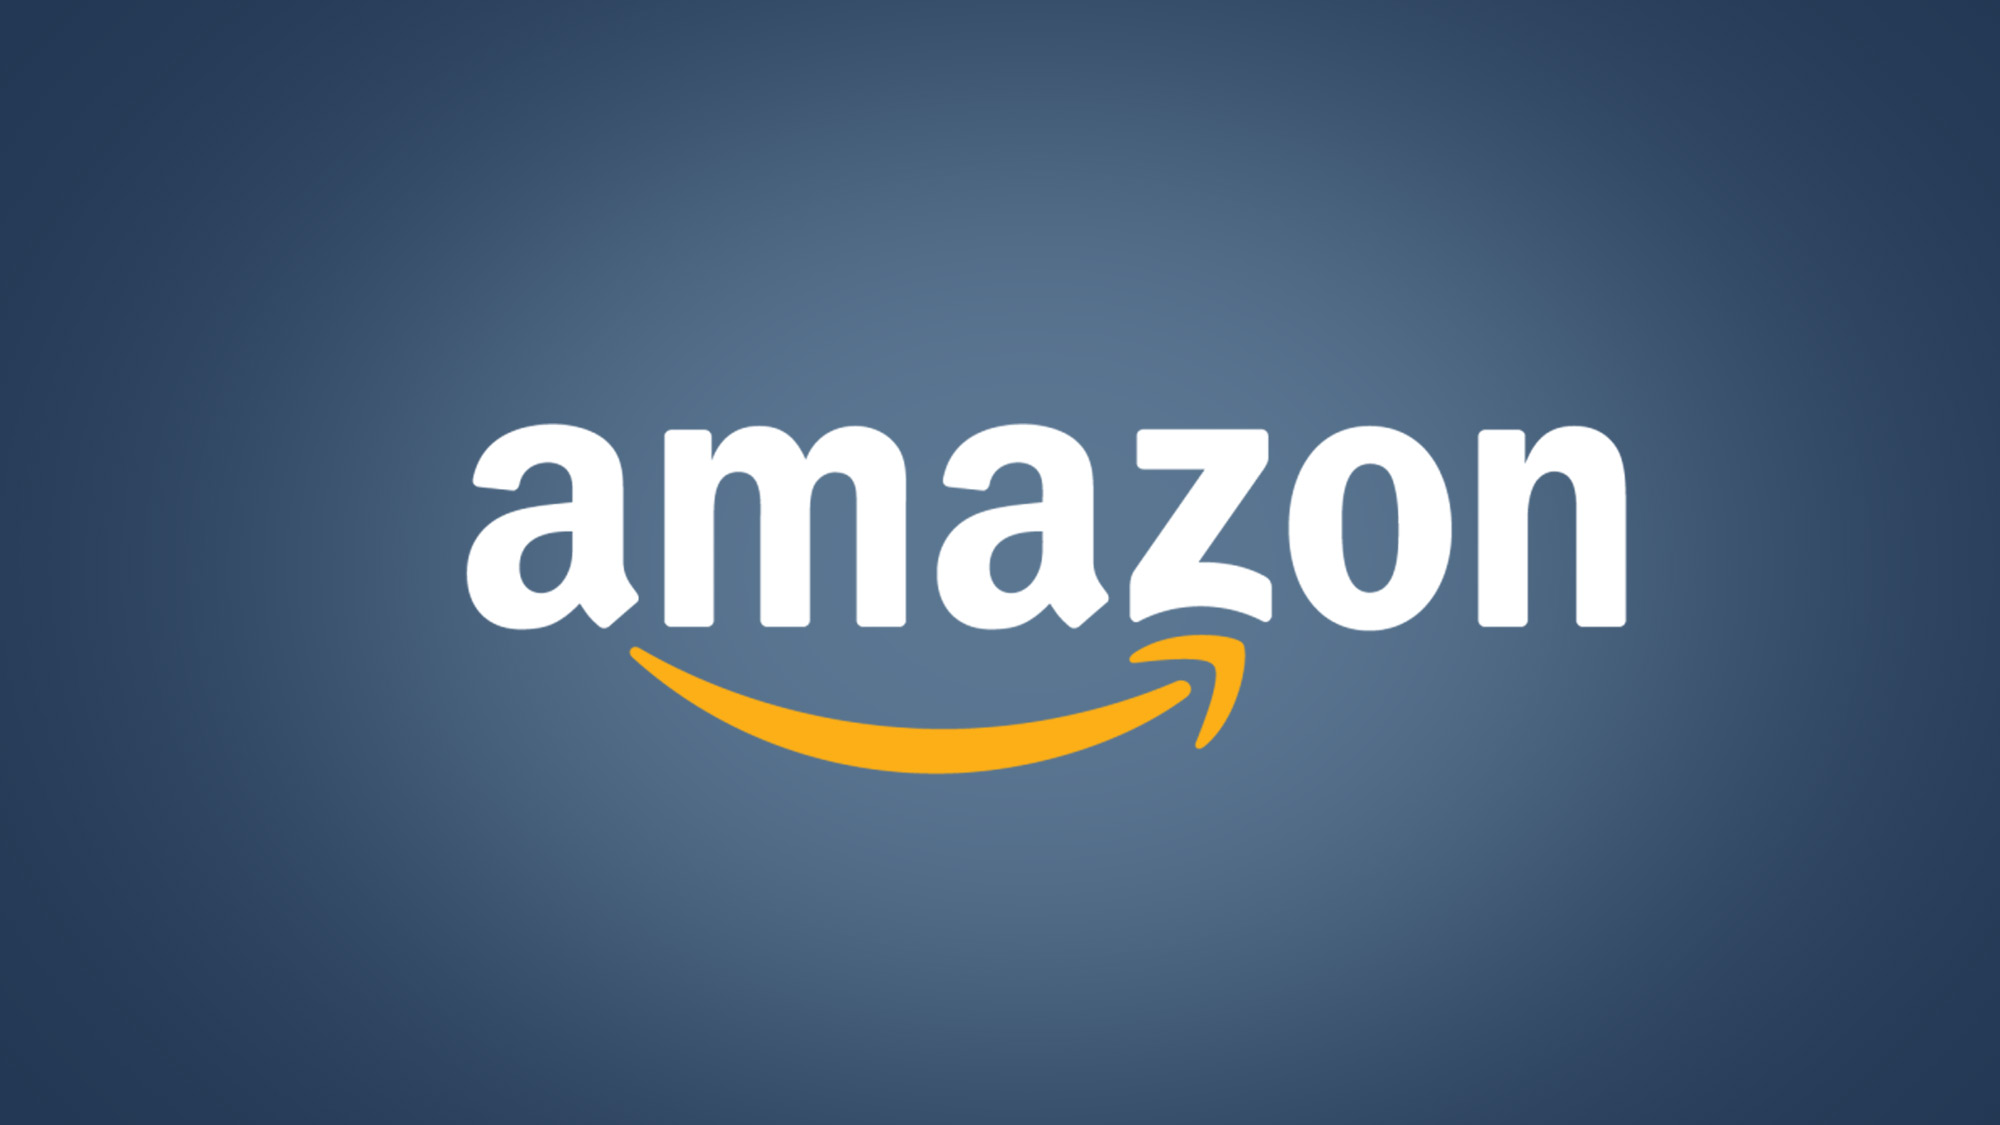 Amazon Prime deliveries delayed by coronavirus | TechRadar